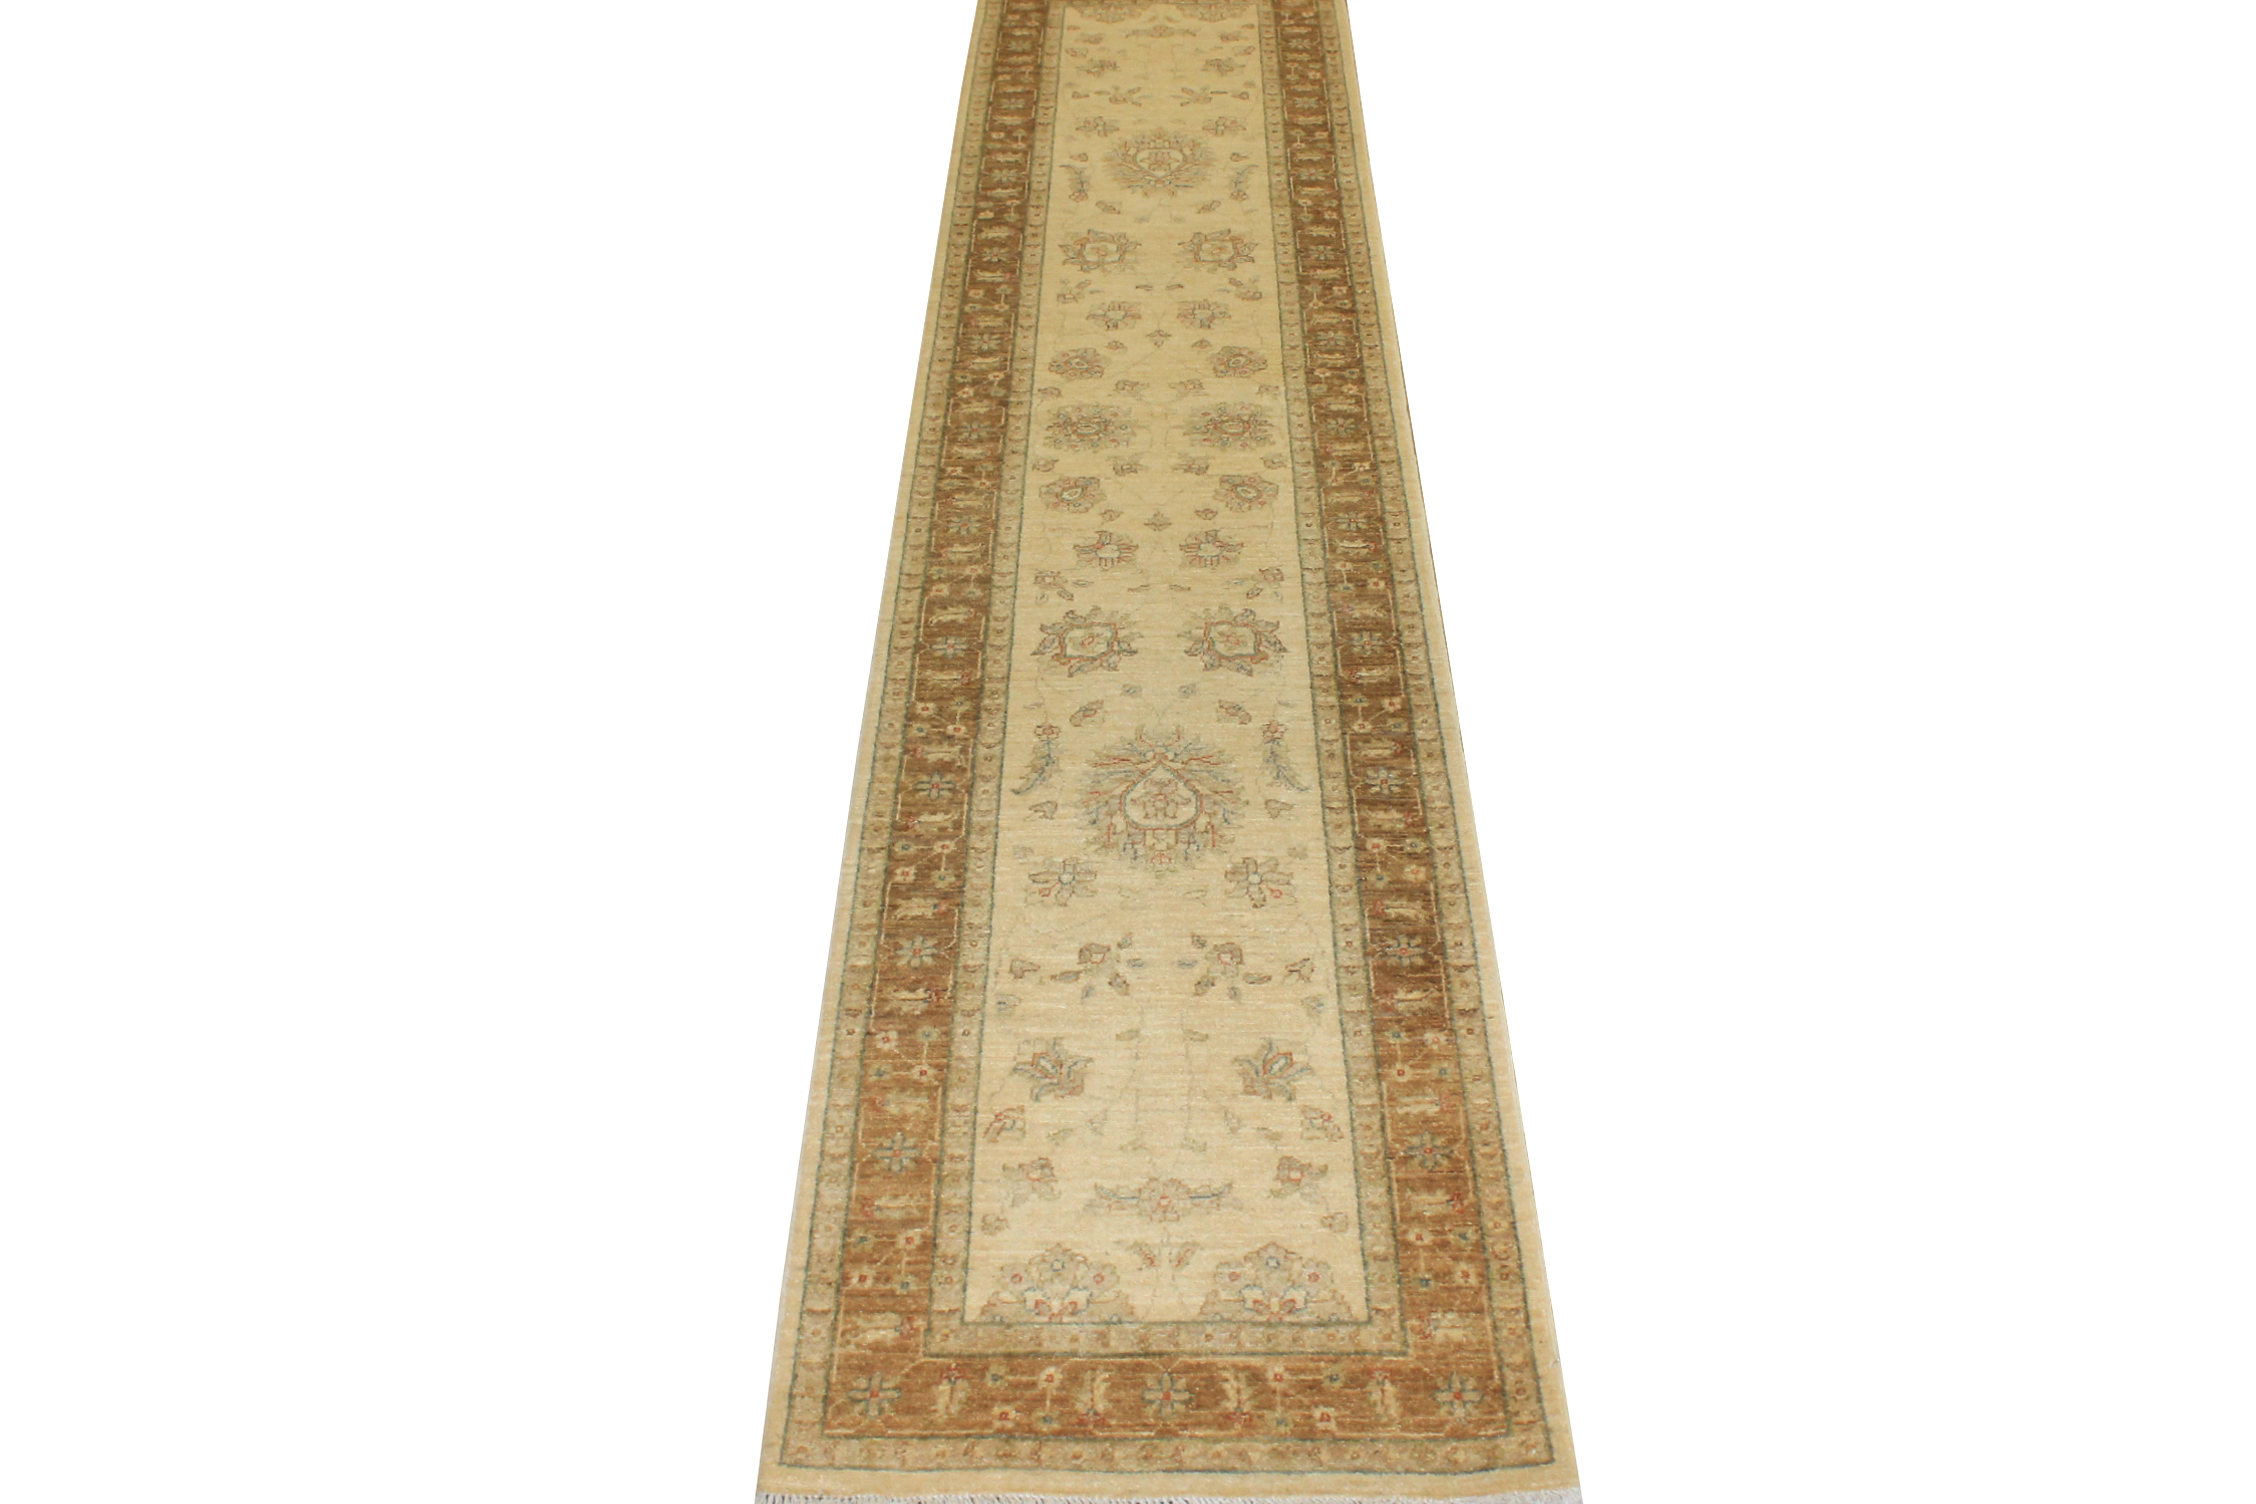 12 ft. Runner Peshawar Hand Knotted Wool Area Rug - MR14232